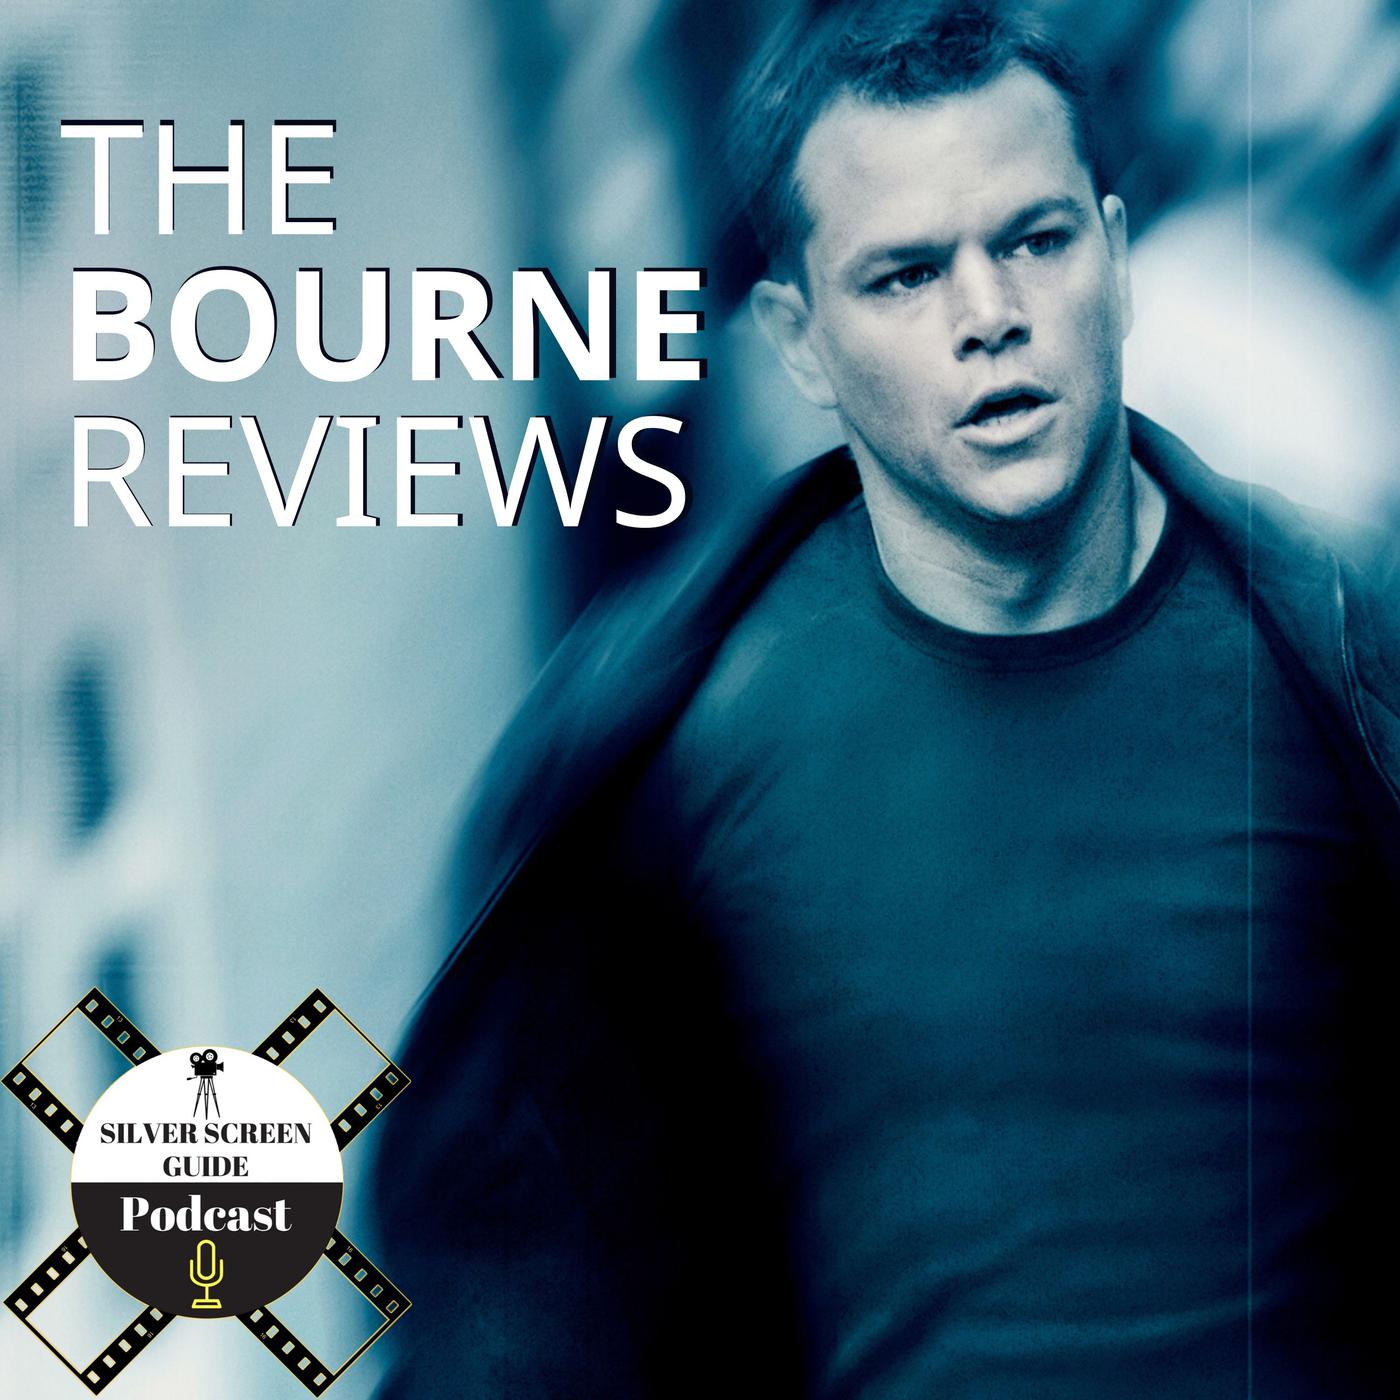 The Bourne Legacy 2012 Movie Review Fourth In Jason Bourne Movie Review Series Listen Notes